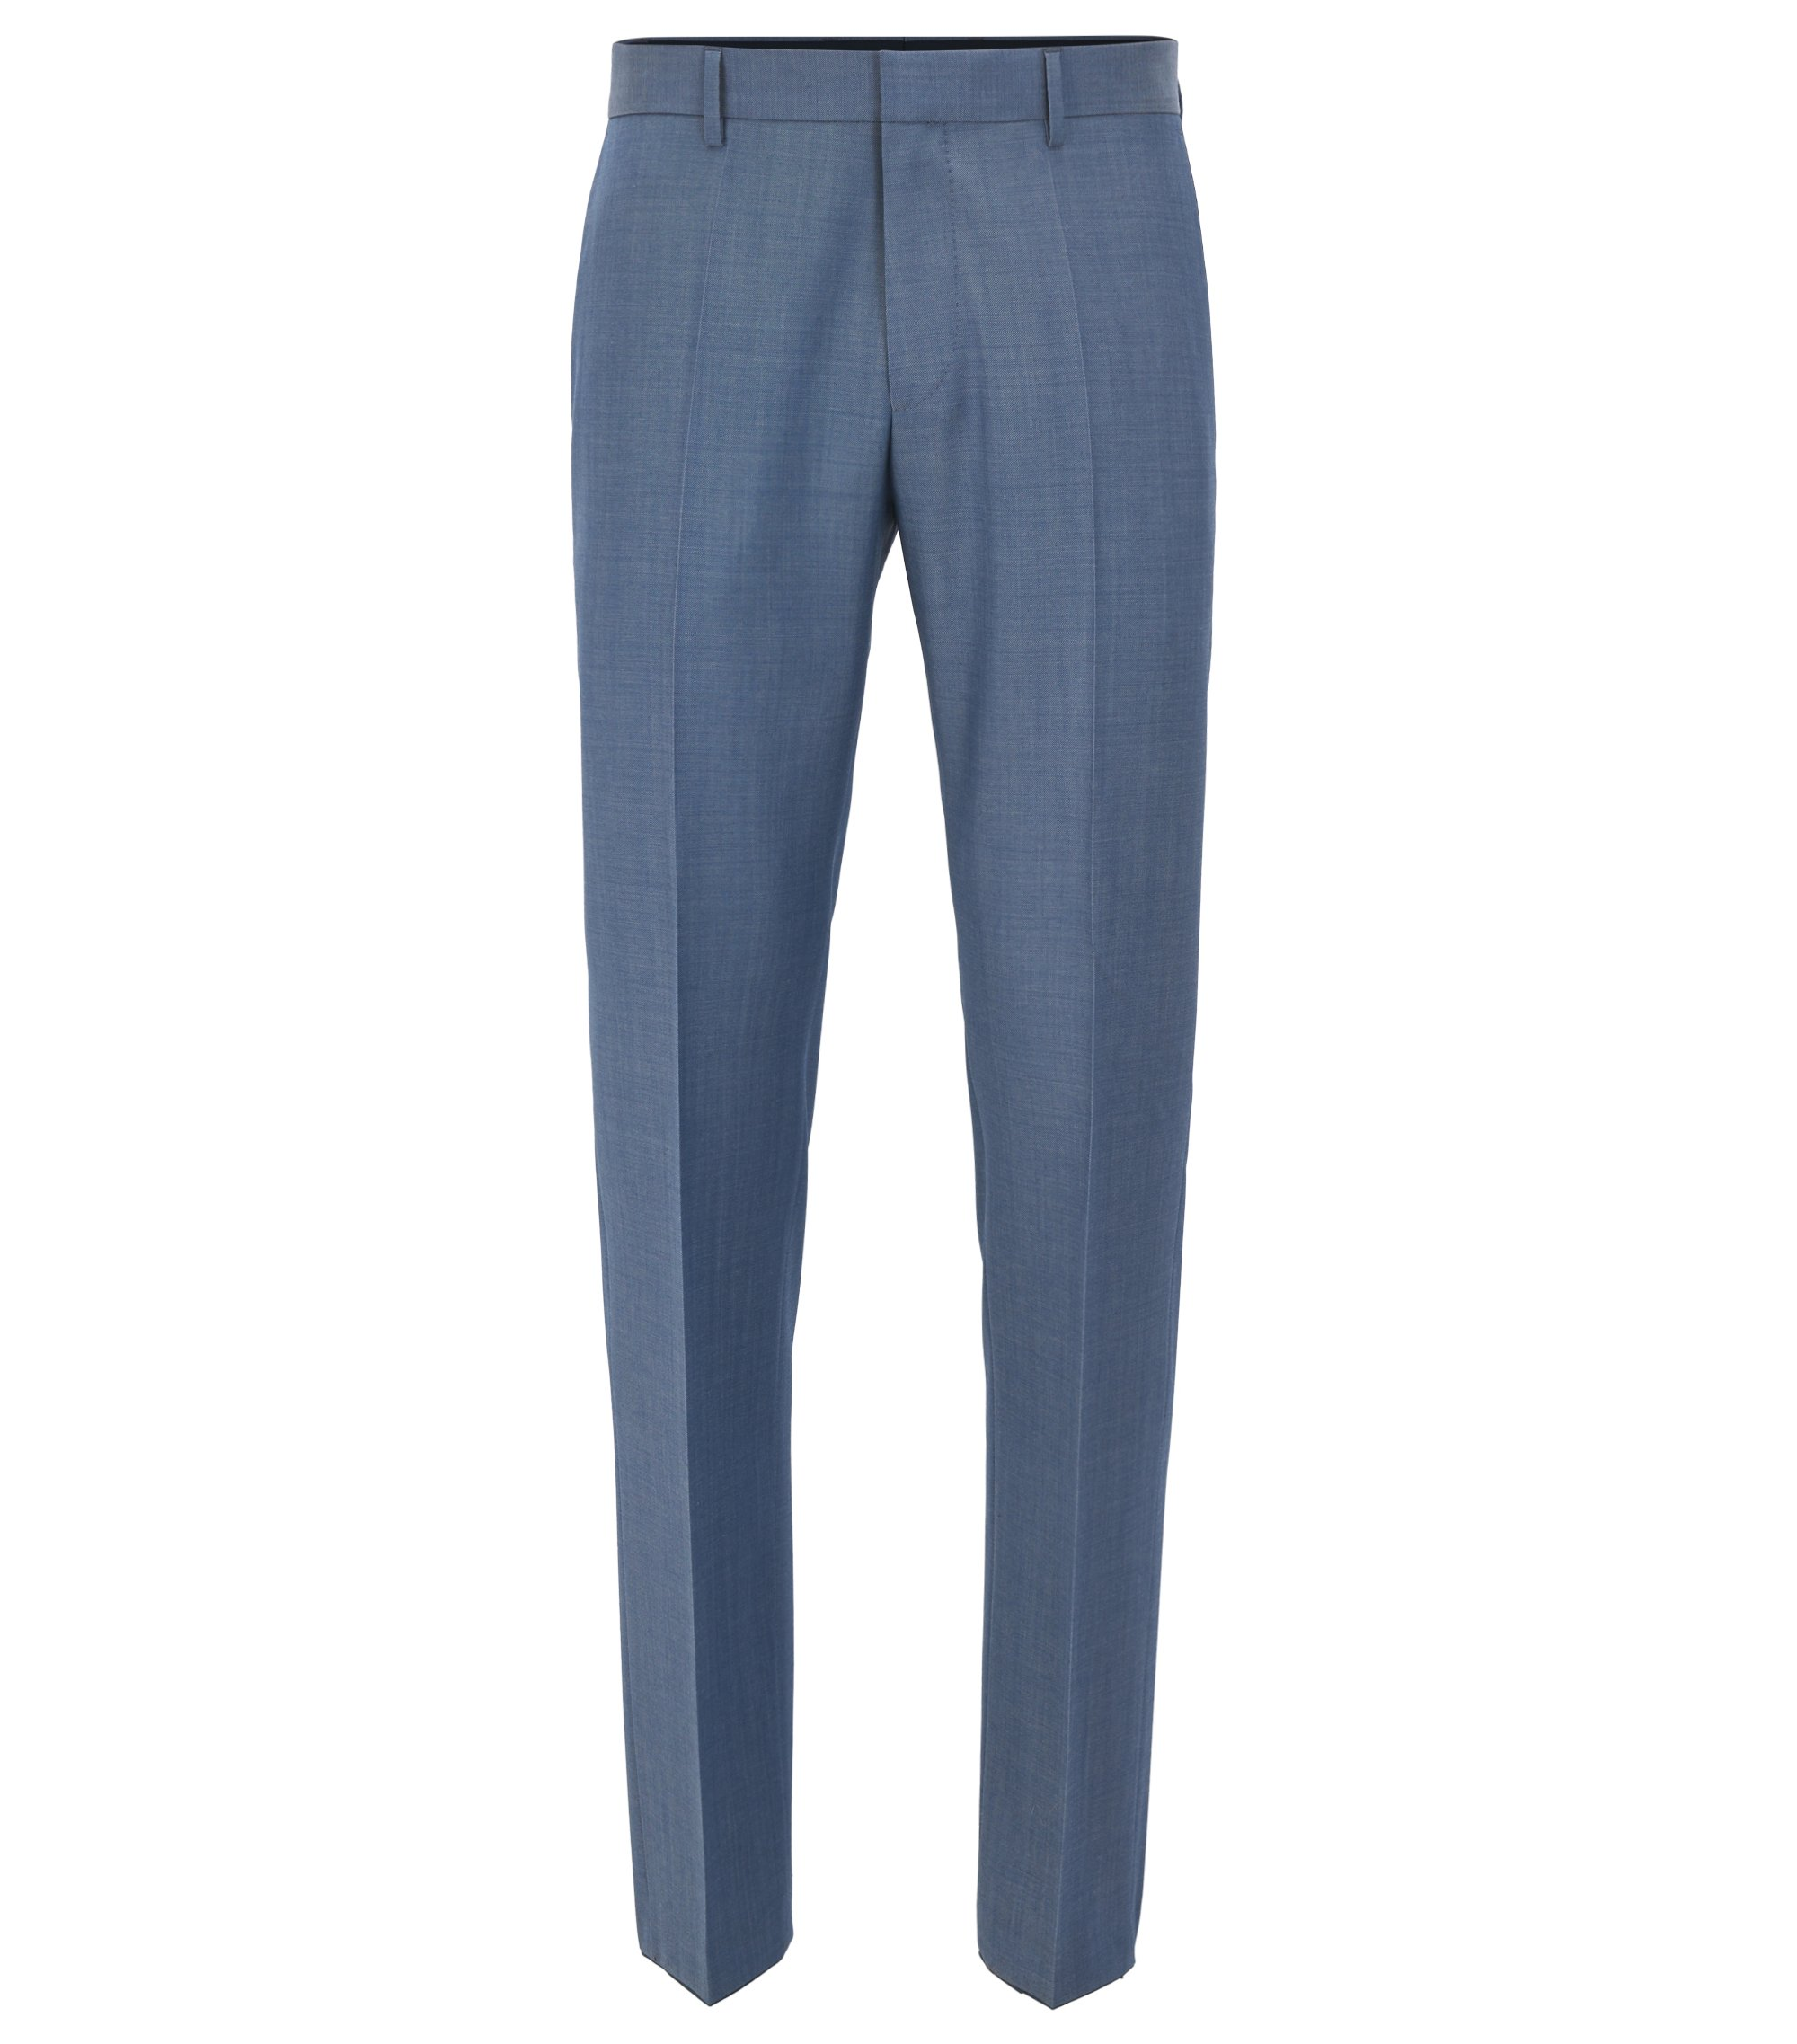 Slim-Fit Hose aus Schurwolle in Mohair-Optik , Blau